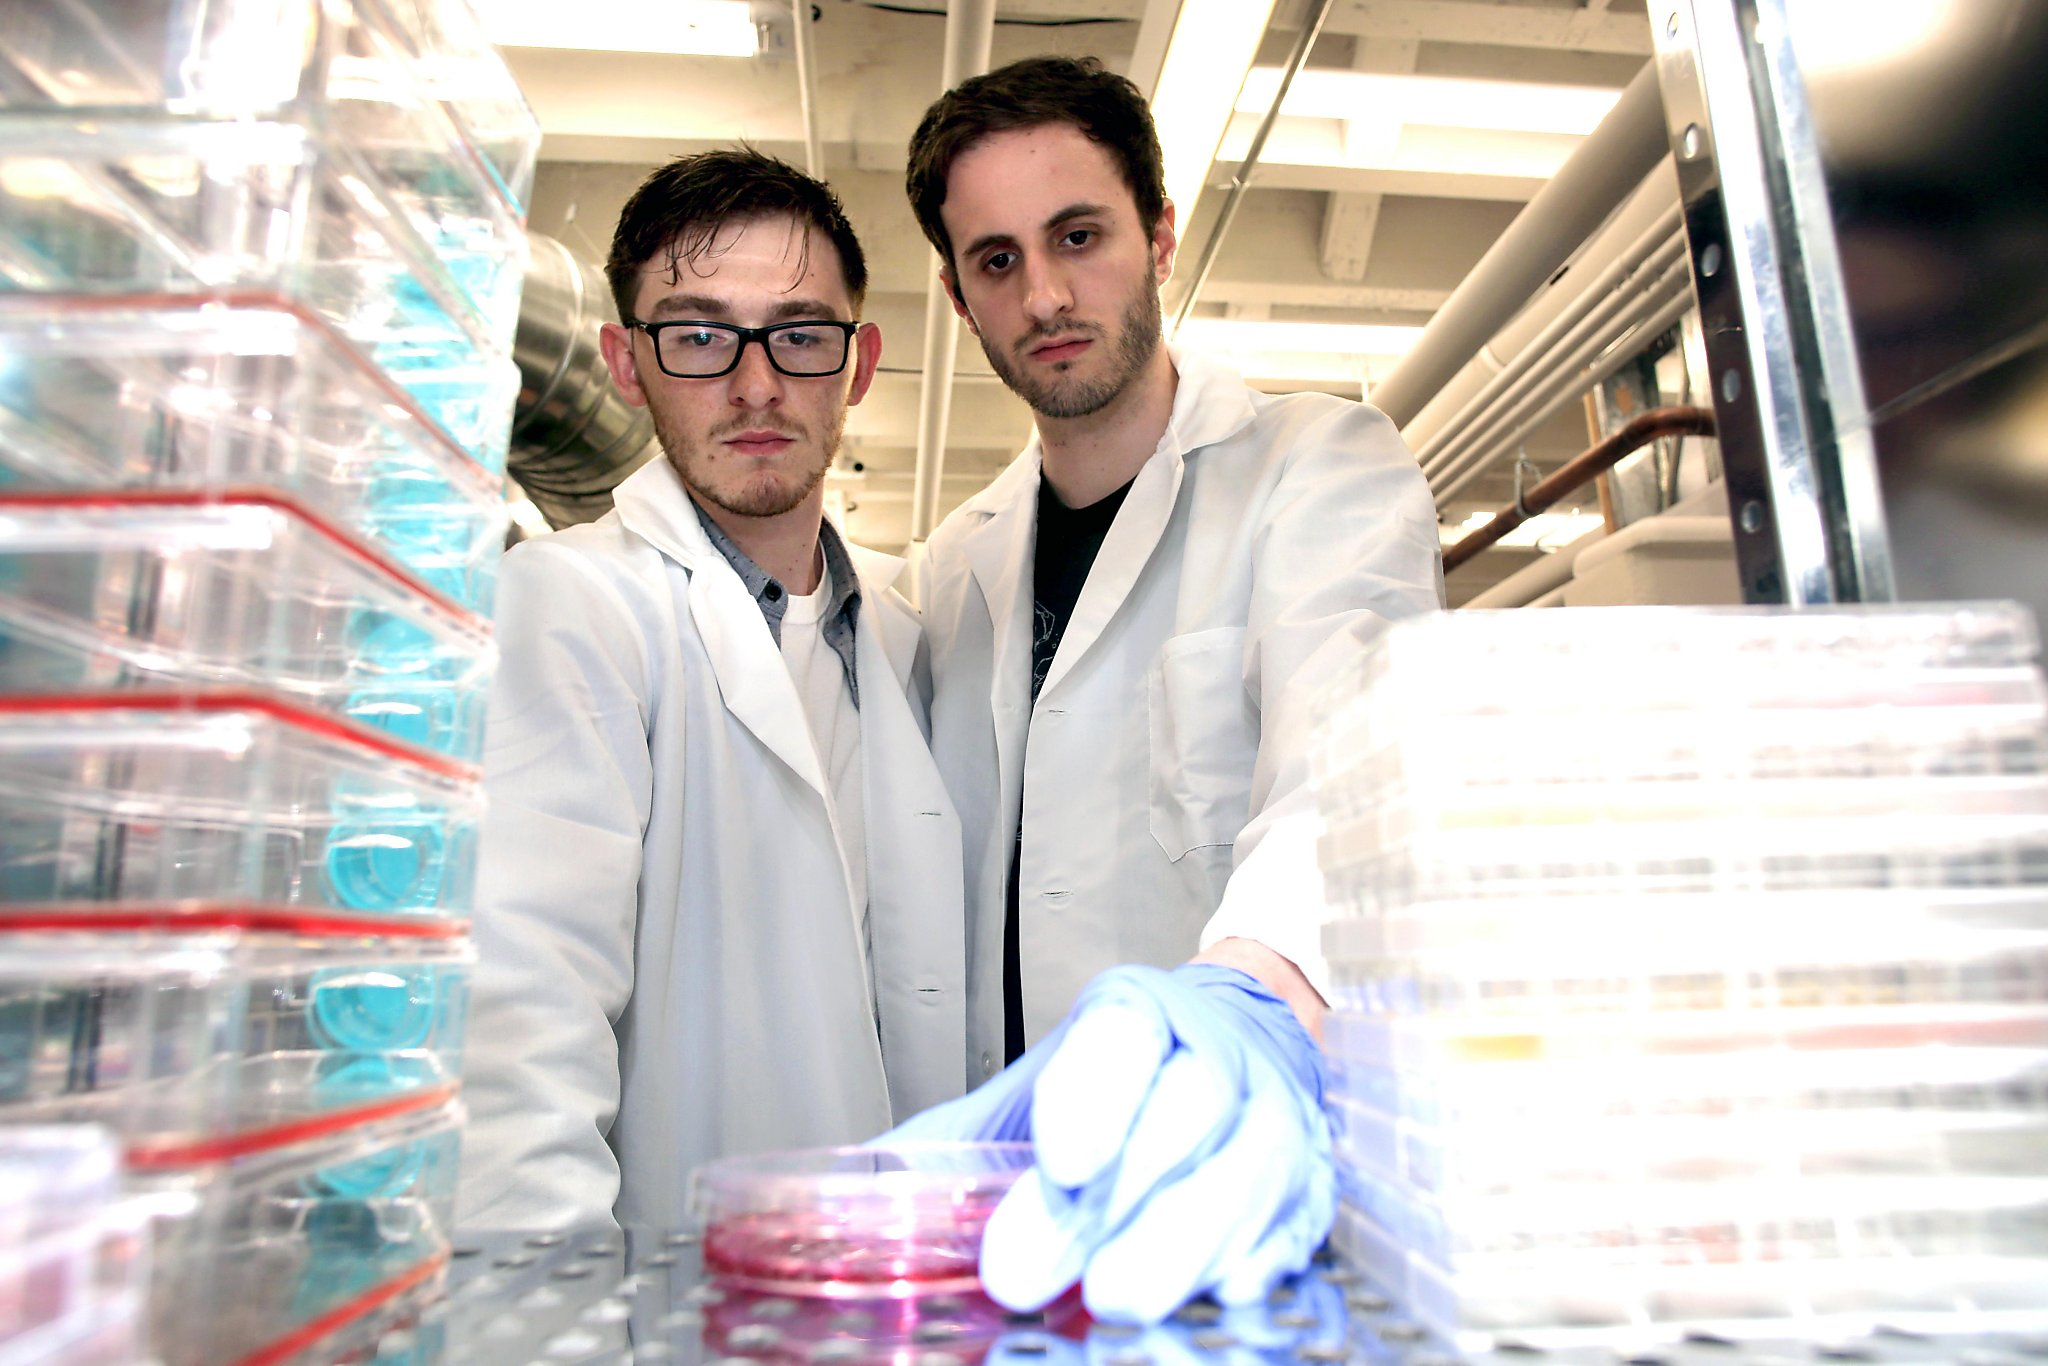 Brian Wyrwas (left)and Mike Selden, co-founders of the startup Finless Foods, are awaiting the arrival of edible fillets in their San Francisco lab.Photo by  San Francisco Chronicle